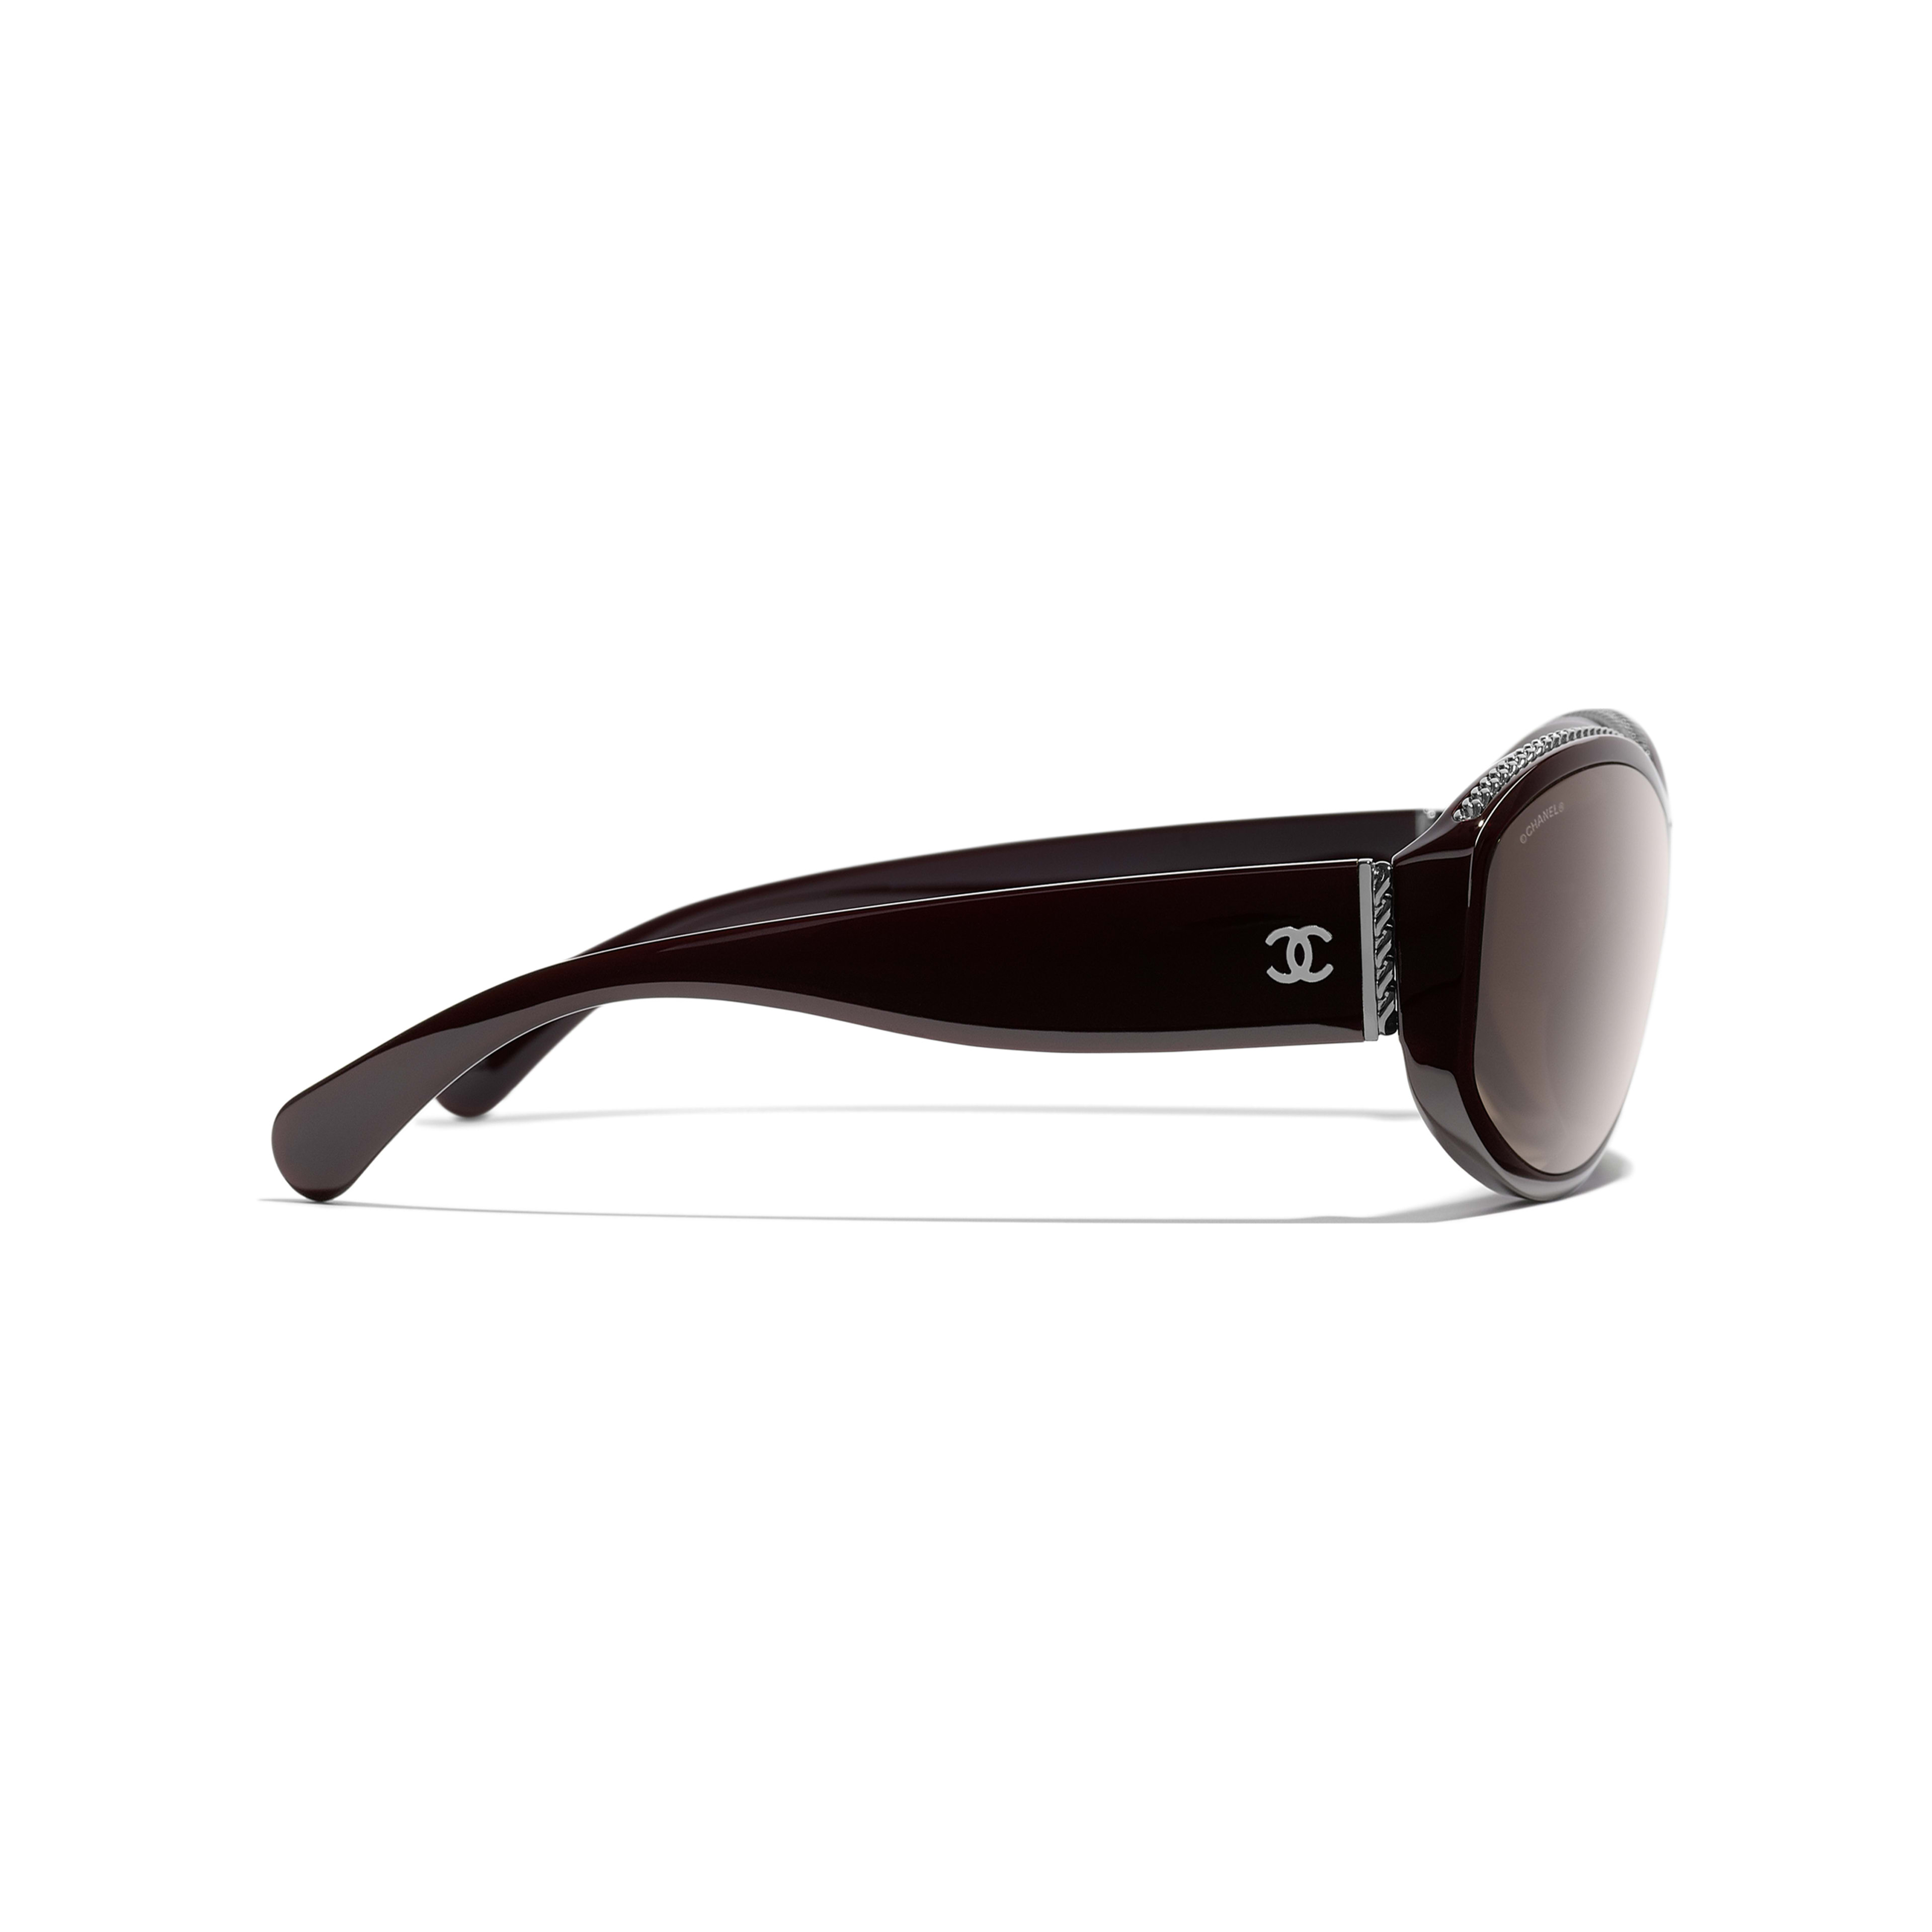 Shield Sunglasses - Burgundy - Nylon & Metal - Other view - see full sized version